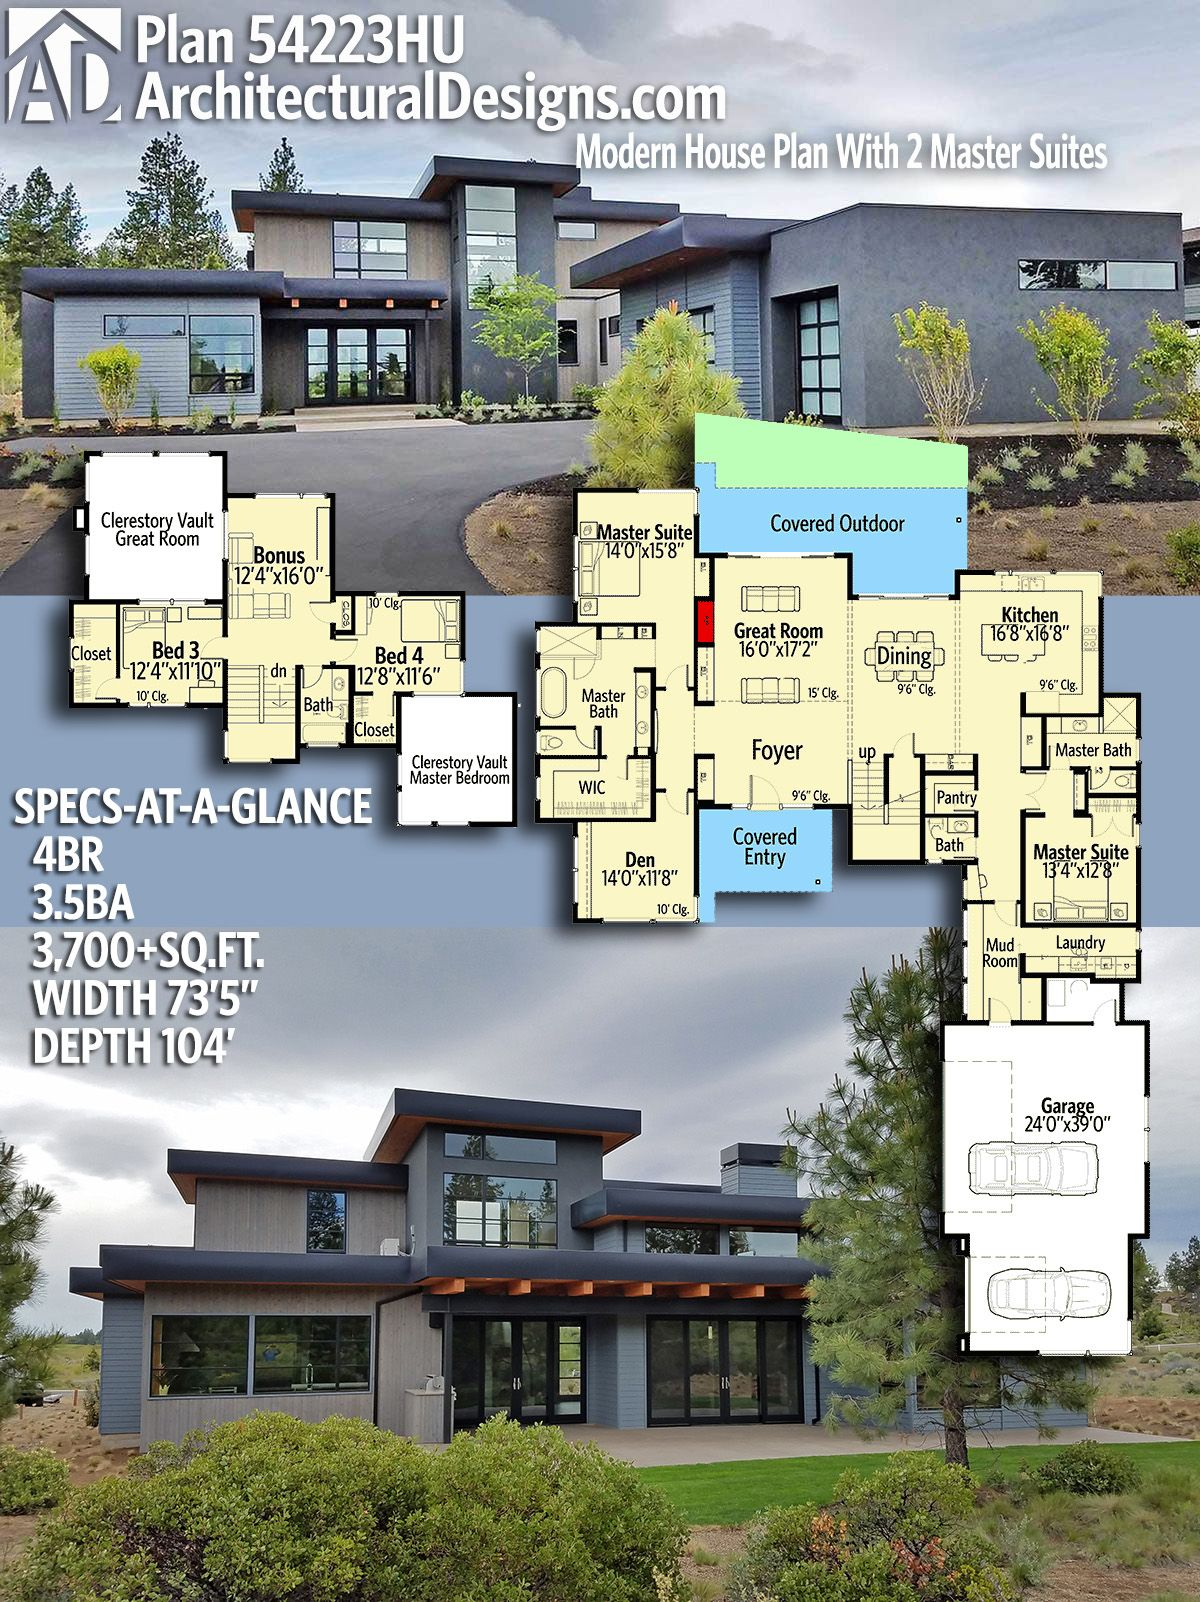 Photo of Plan 54223HU: Modern House Plan With 2 Master Suites